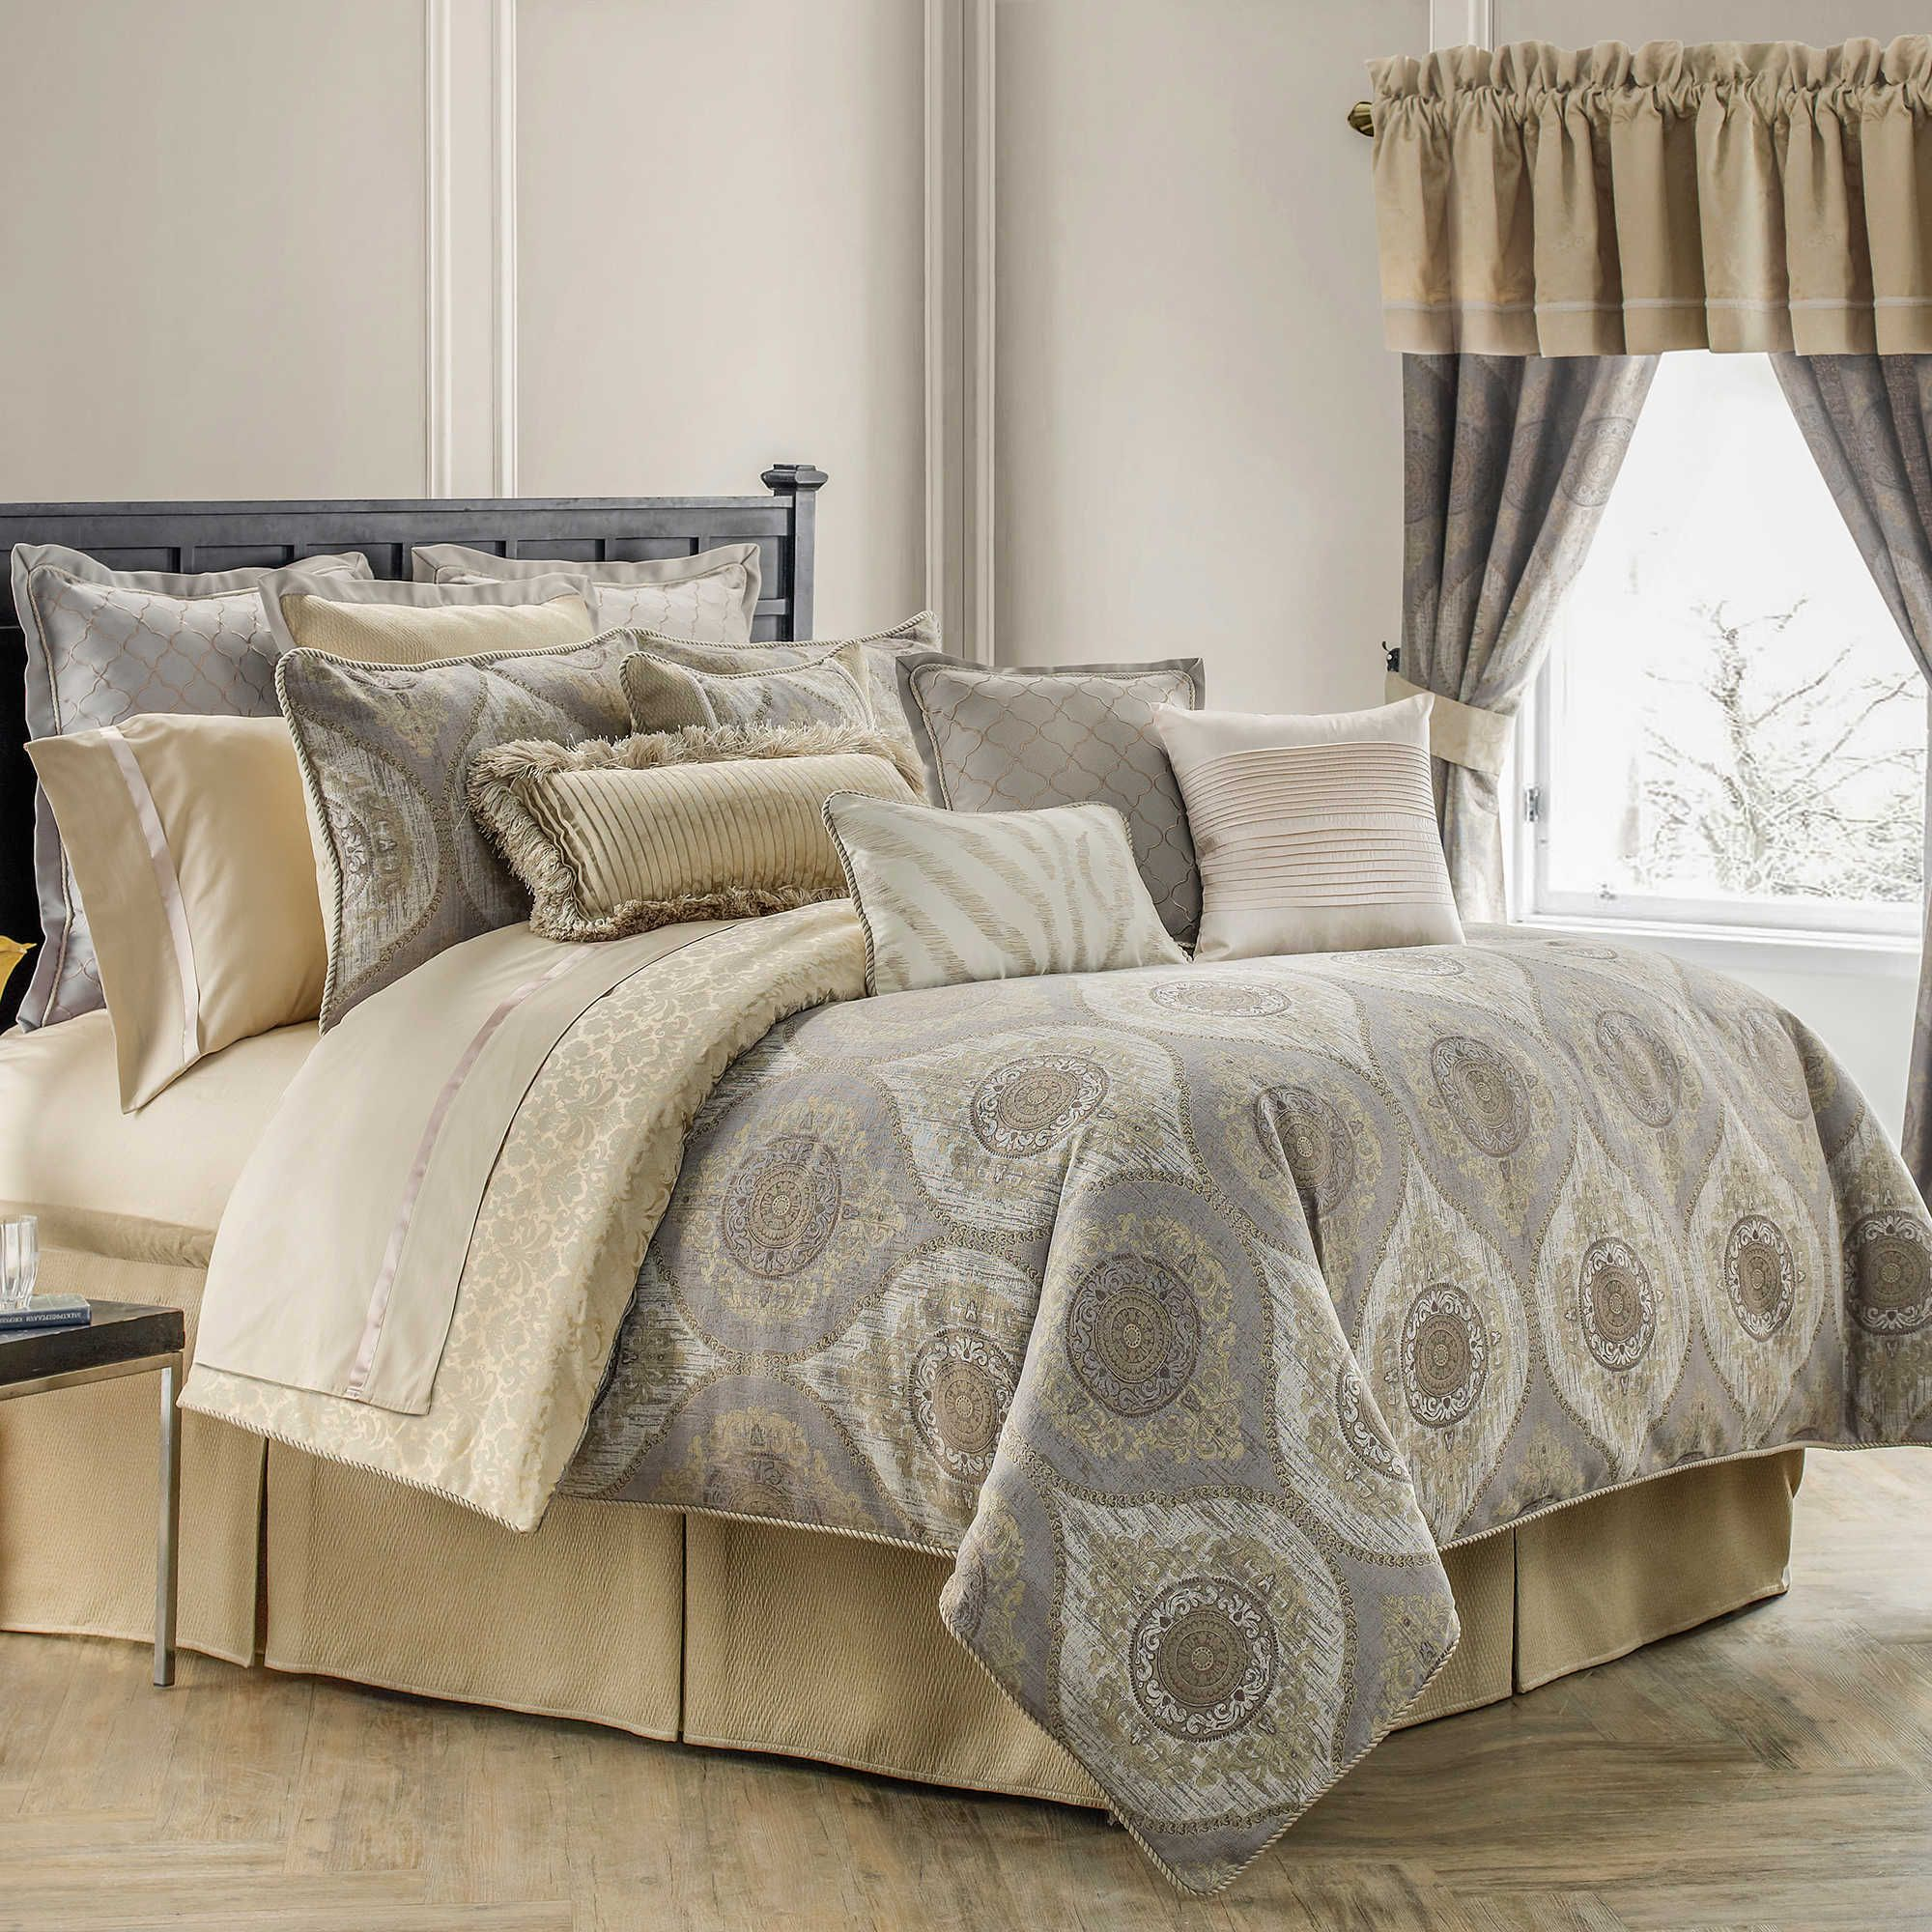 bedding augusta set class ideas touch comforter as wells along clearance king black rc excellent mesmerizing fun size with sets waterford